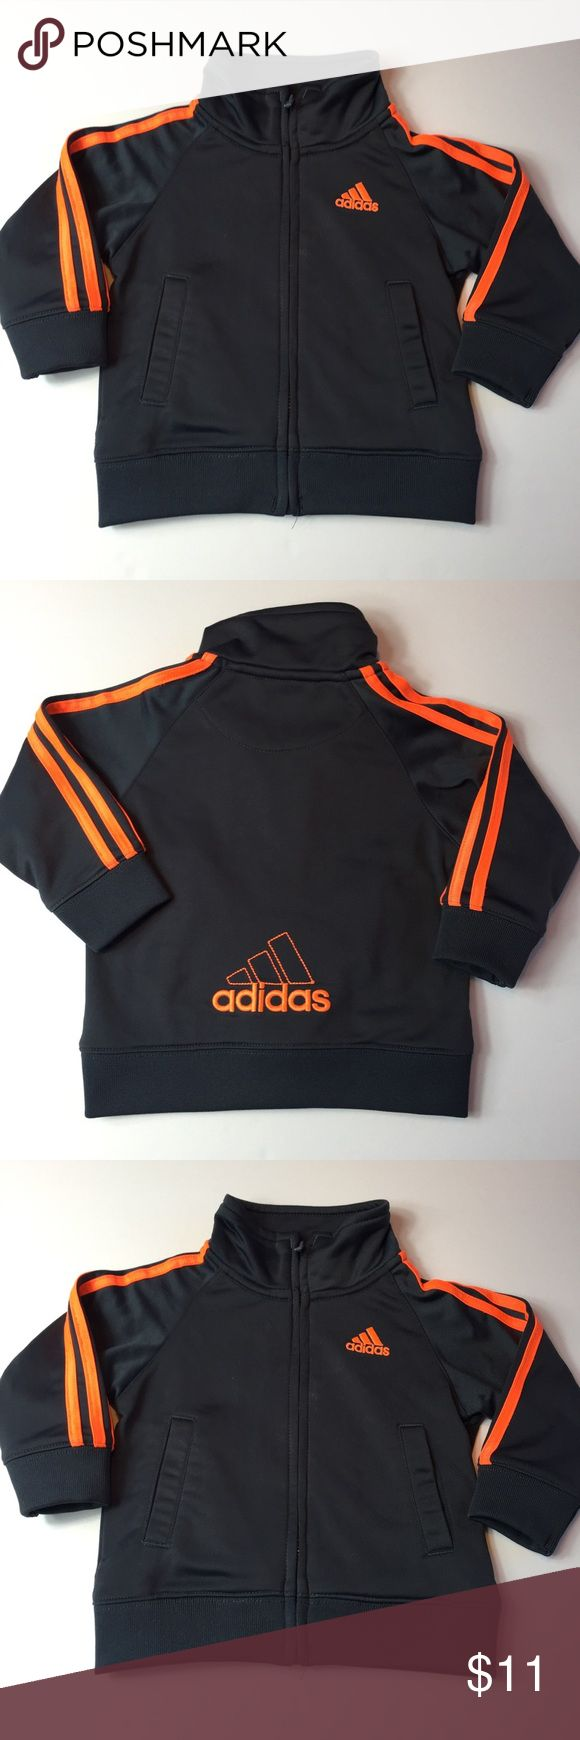 12 Month Adidas Grey and Orange Zip Up GUC Super cute Adidas Grey zip up size 12 Months gently used no damage adidas Jackets & Coats